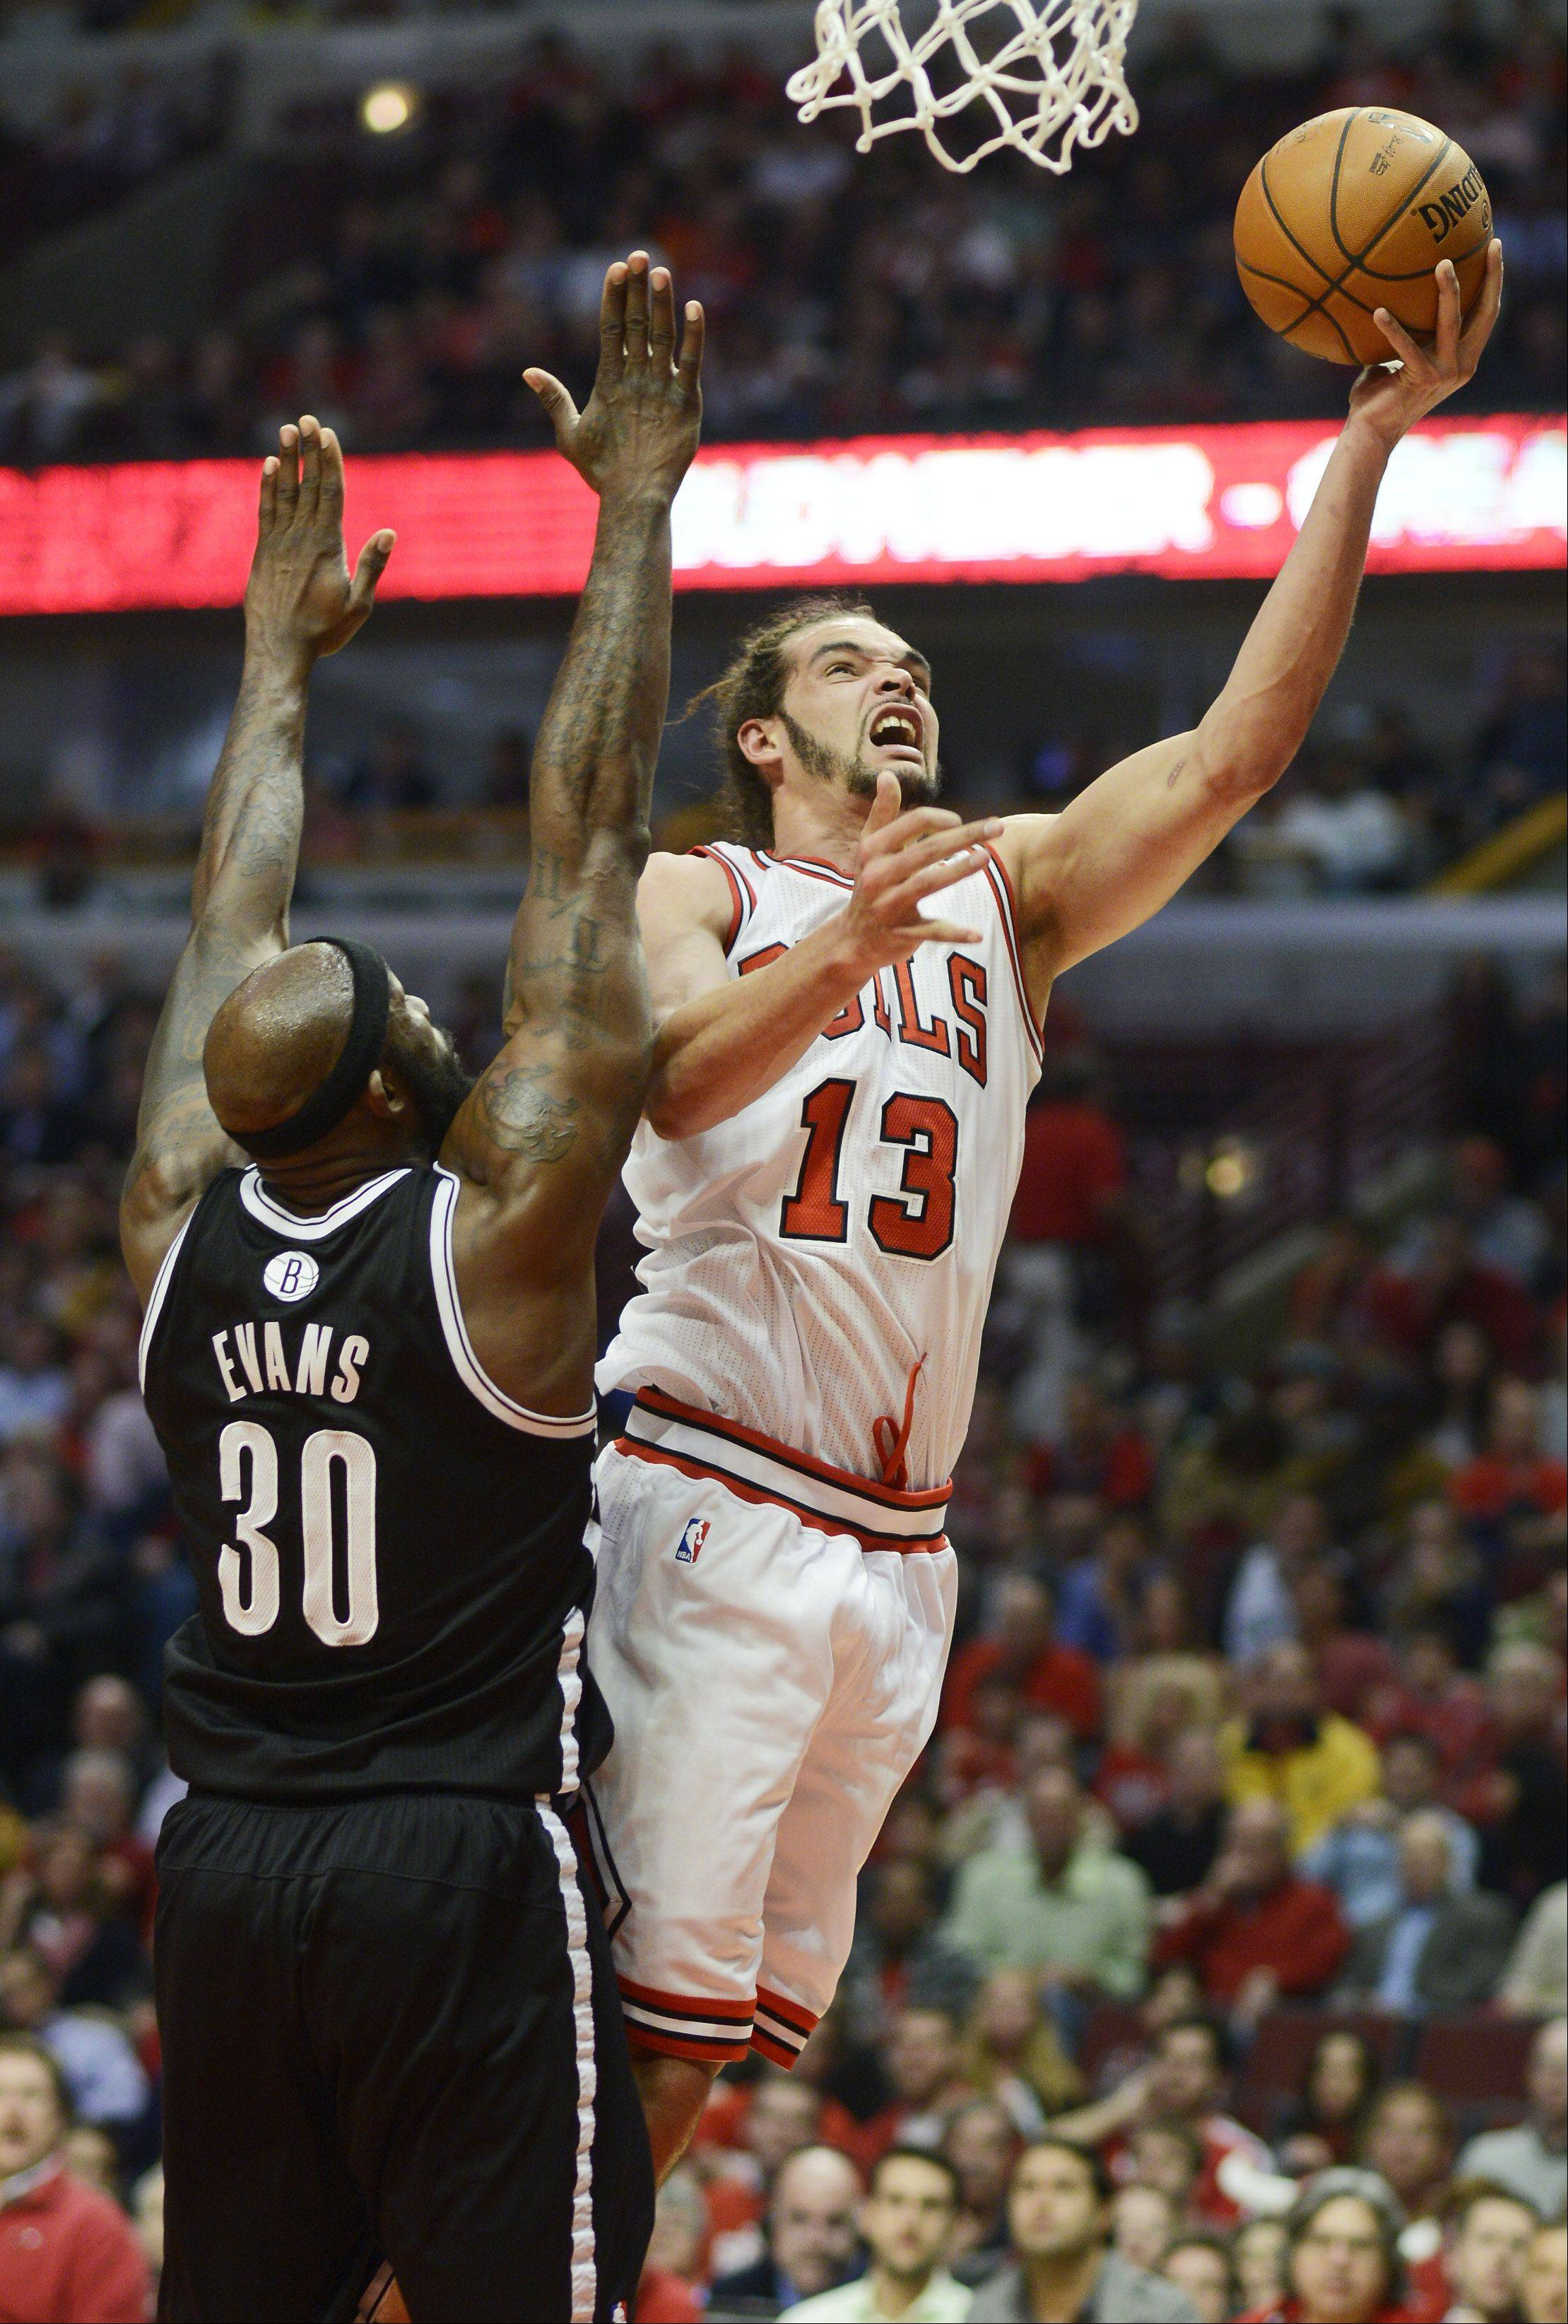 Joakim Noah of the Chicago Bulls drives to the basket for a layup against Brooklyn Nets defender Reggie Evans in Game 6 of the first round playoff game at the United Center in Chicago, Thursday, May 2, 2013.